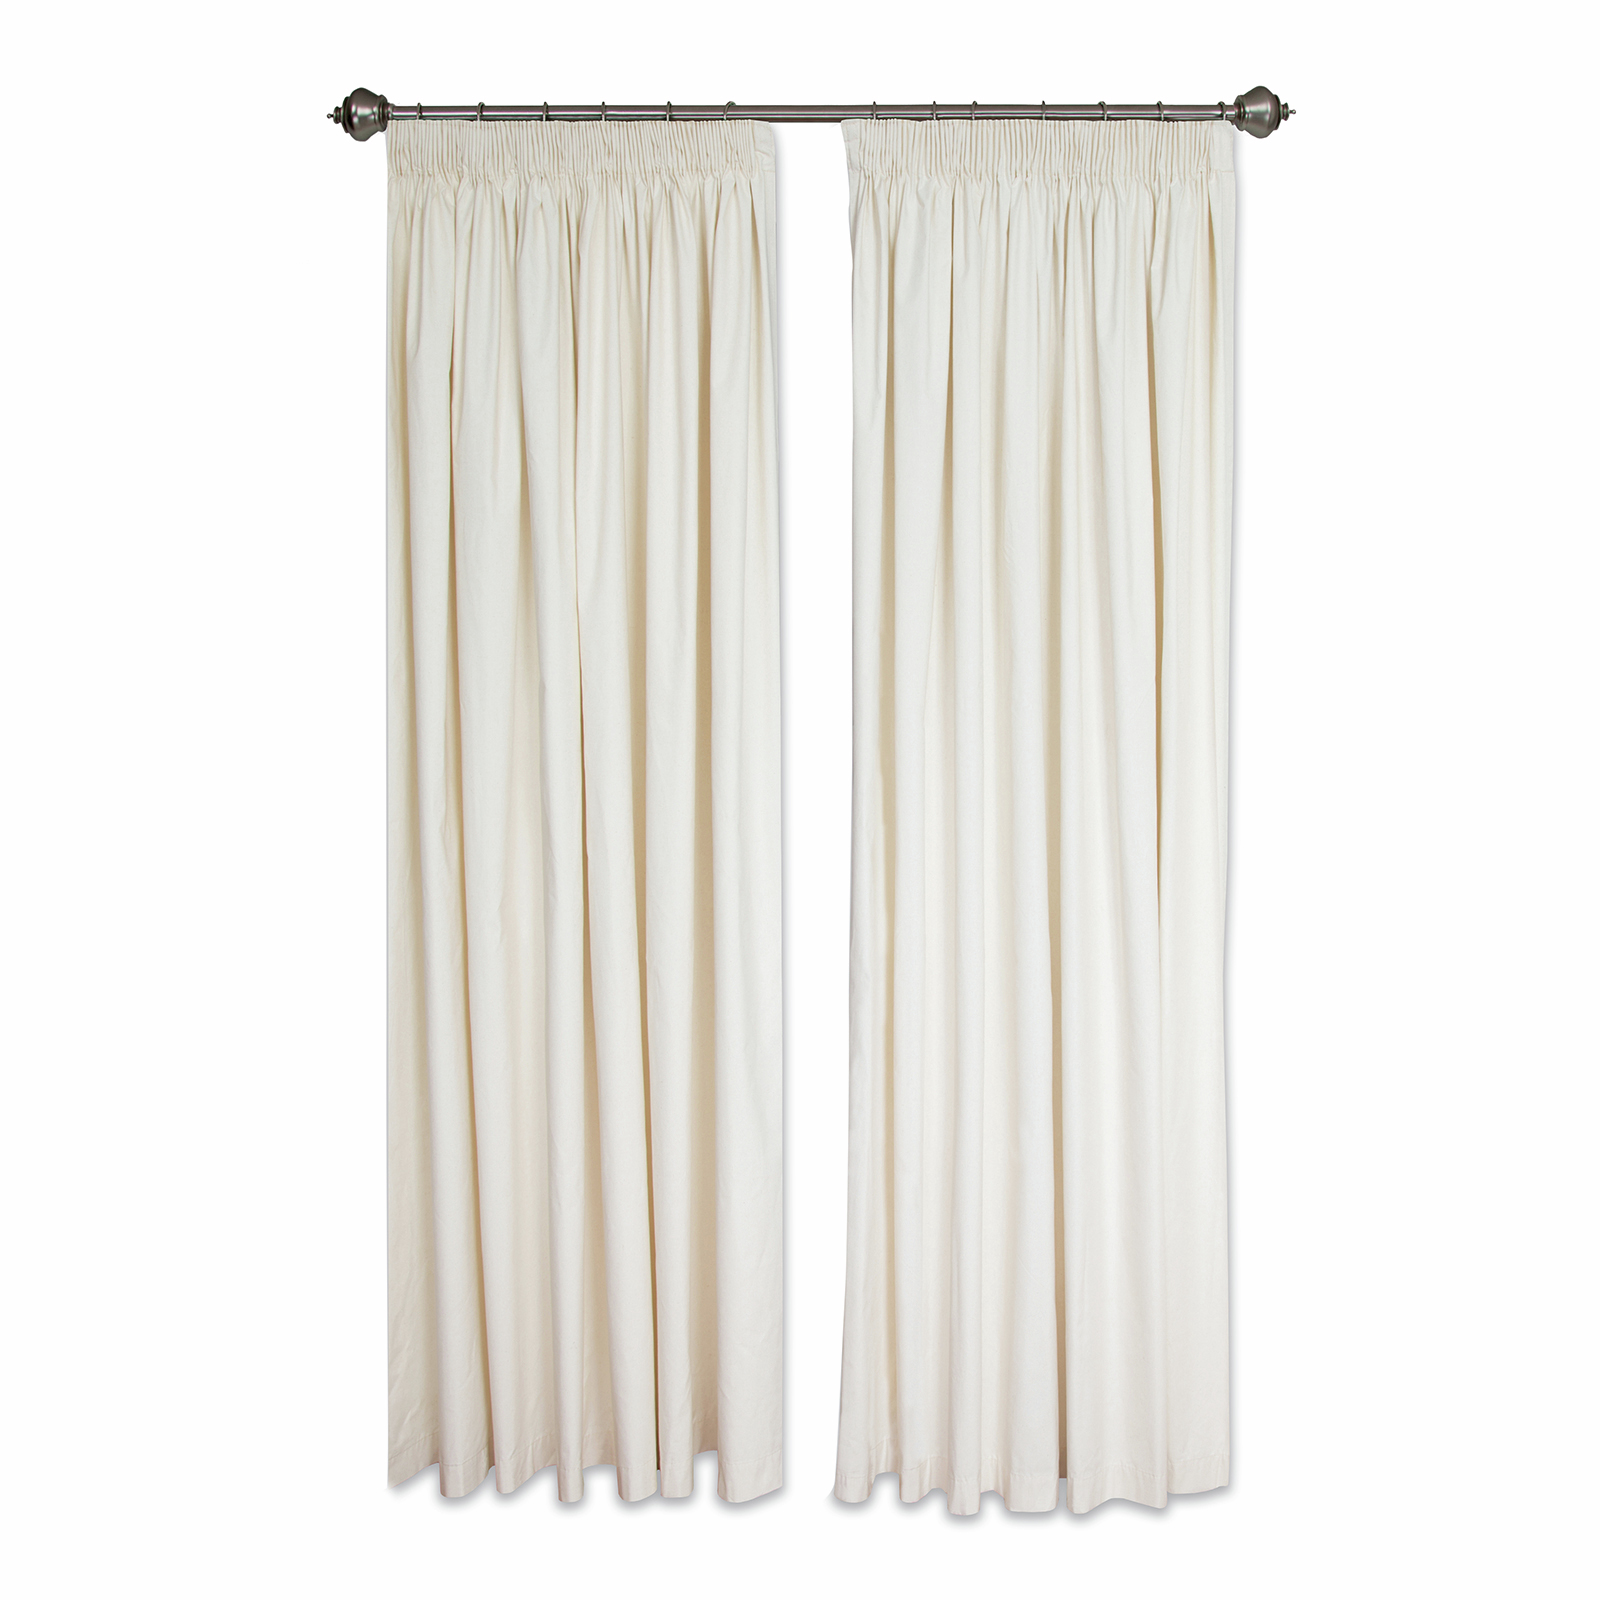 Homebase 1.5 x 1.6m Calico Thermal Curtain